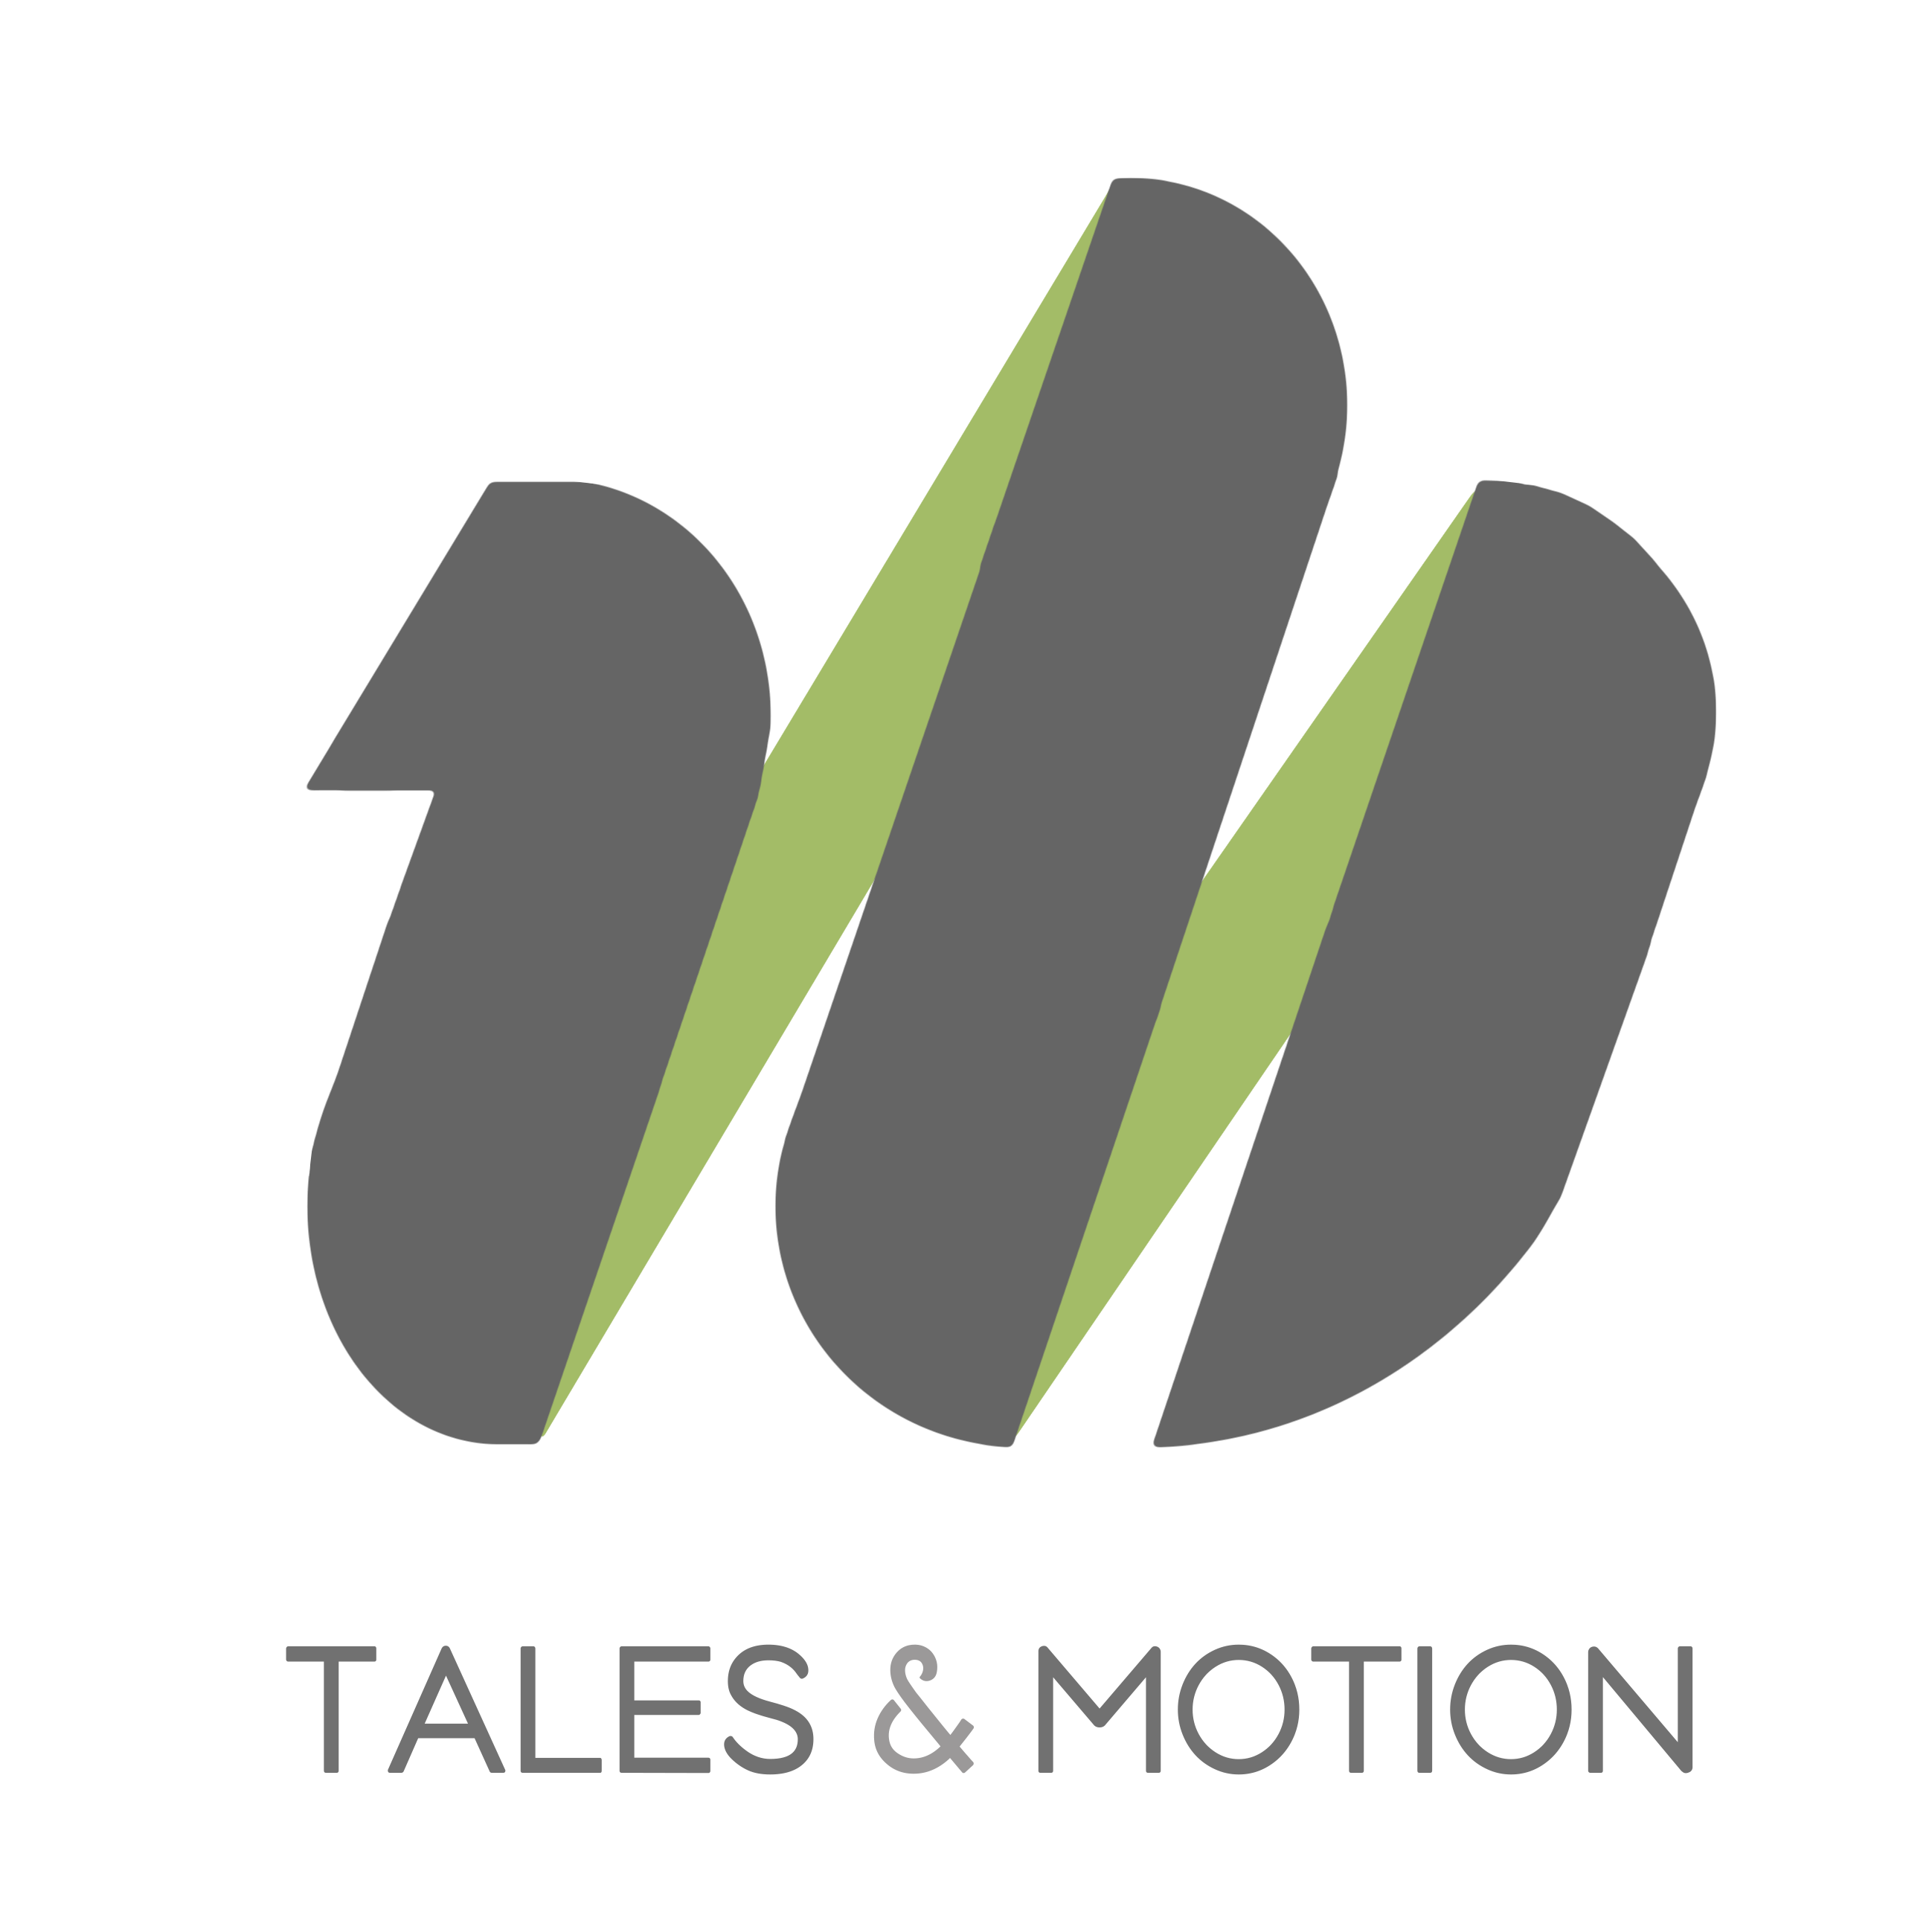 Tales & Motion Limited